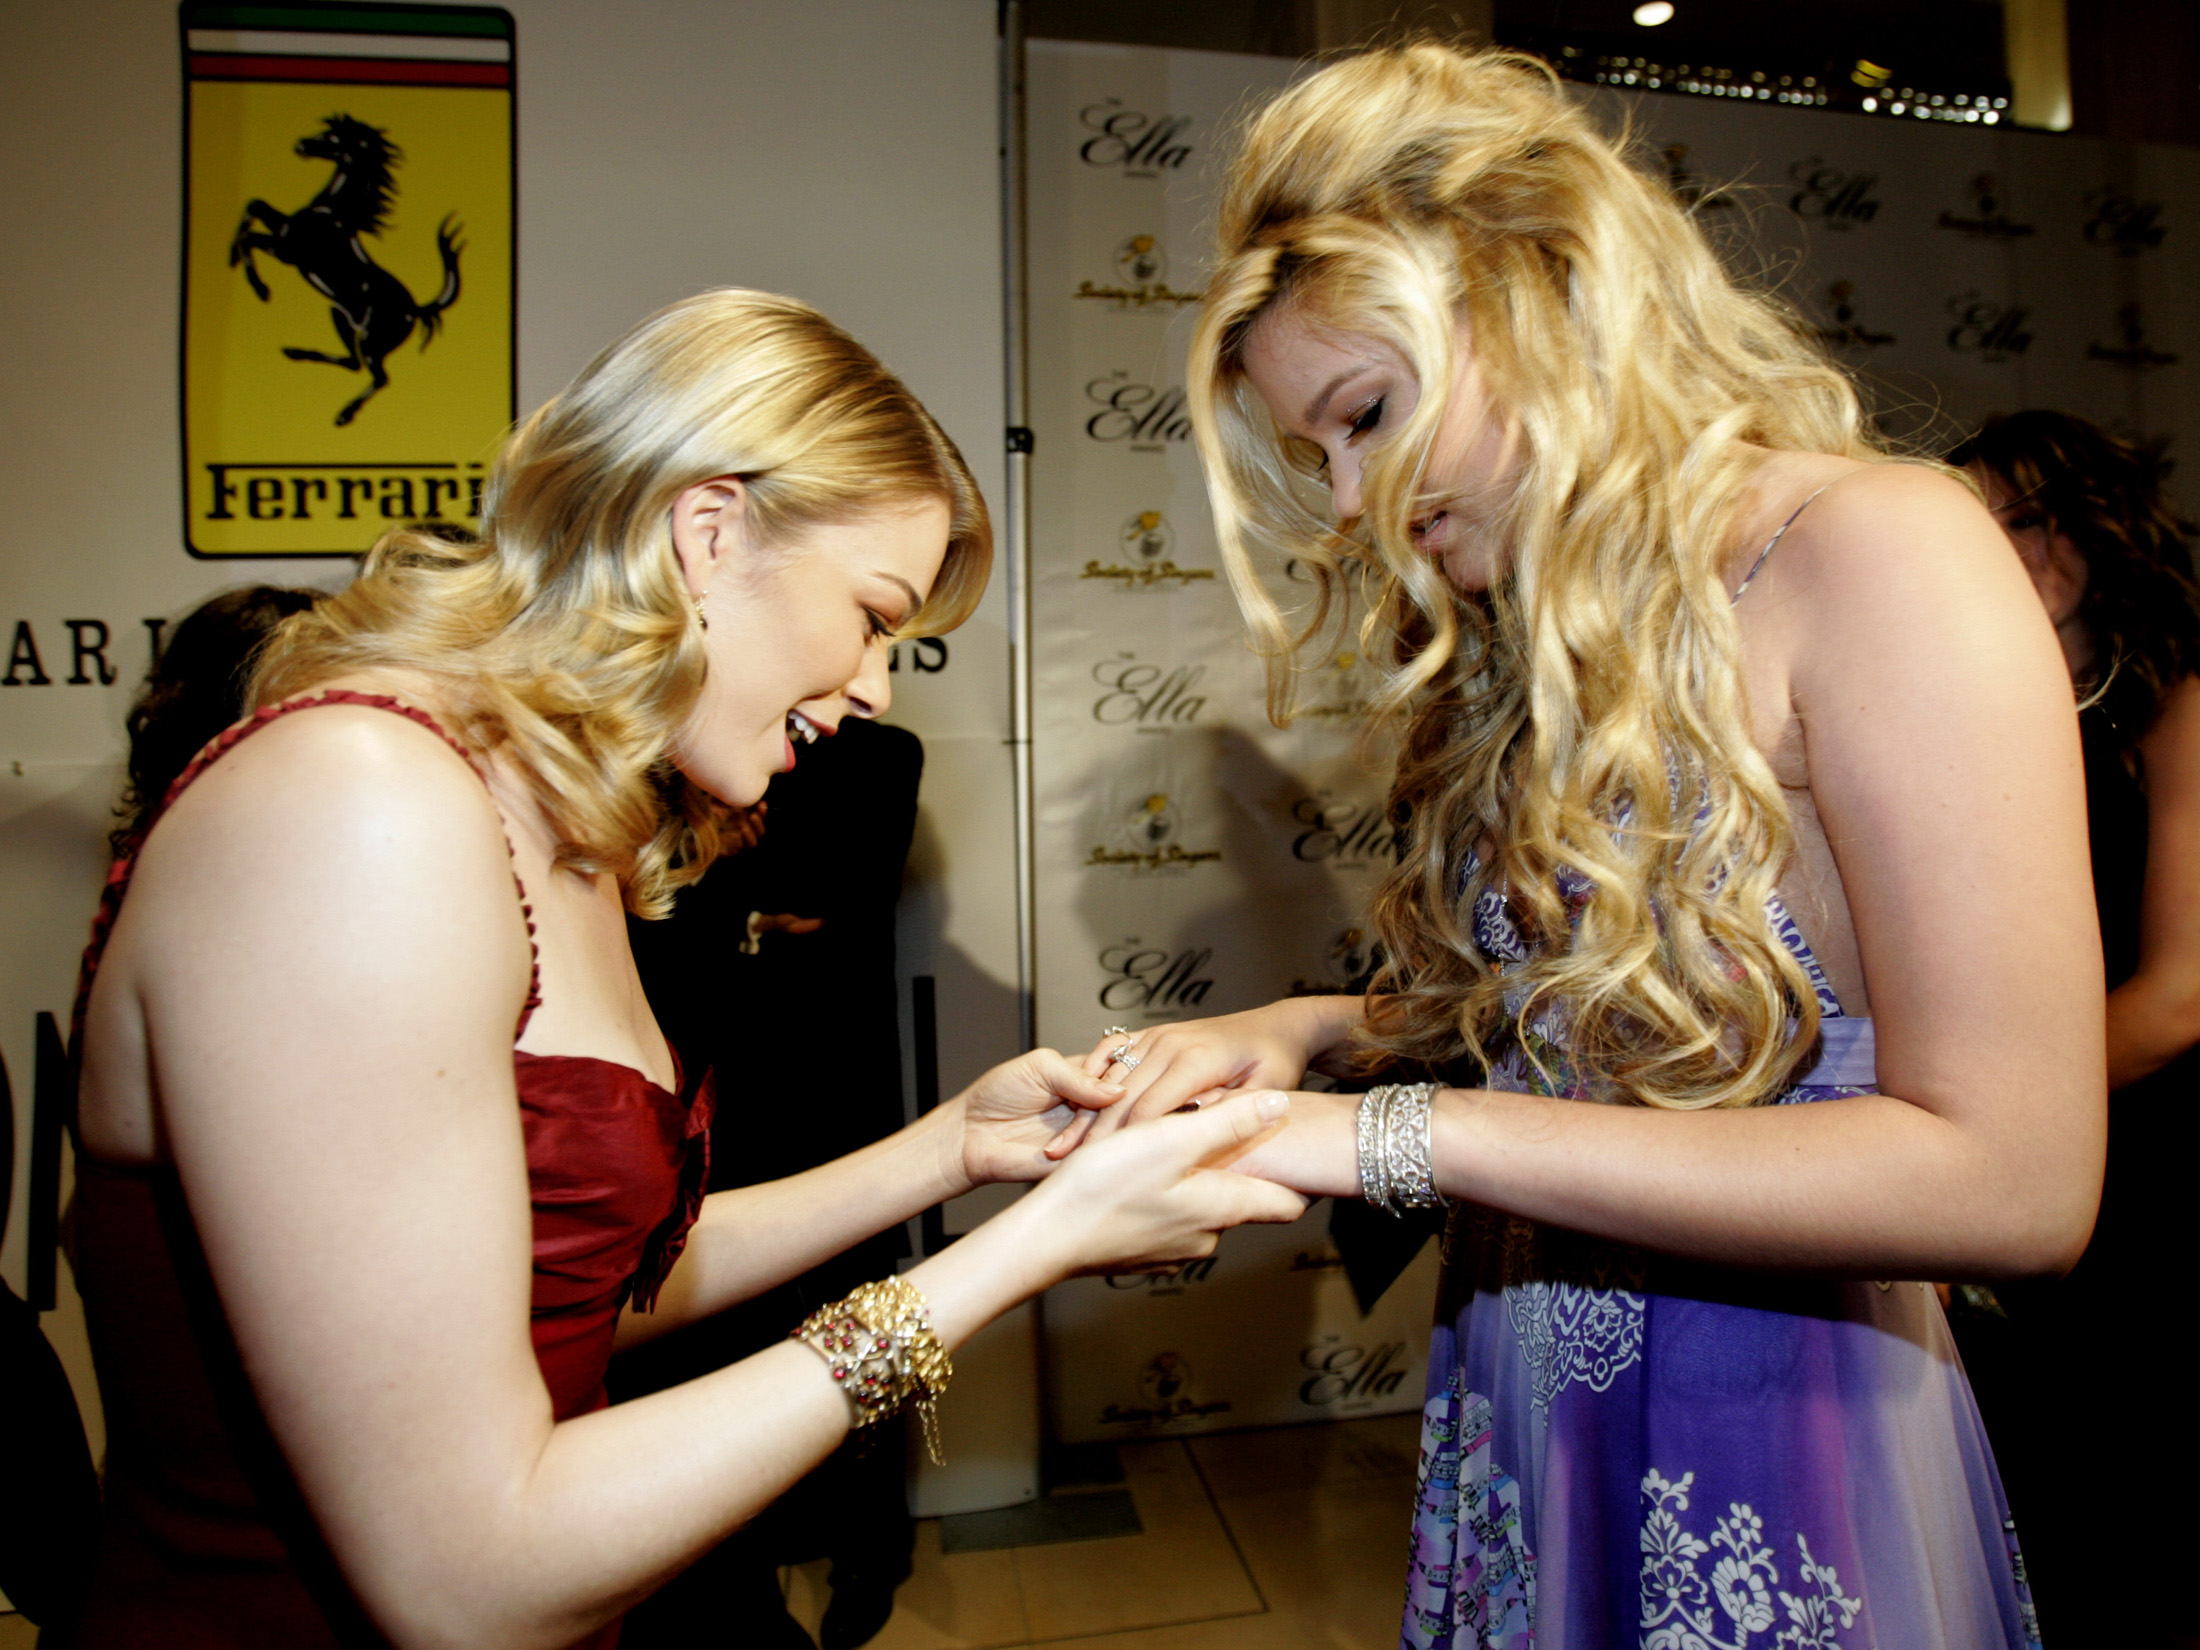 Music recording artists LeAnn Rimes (L) and Joss Stone look at each other's rings as they arrive at the 14th annual Ella awards at the Beverly Hilton hotel in Beverly Hills on October 10, 2005. The Ella award is given out by the Society of Singers (SOS), a nonprofit organization that offers comprehensive services to meet the emergency financial needs of professional singers worldwide. REUTERS/Mario Anzuoni